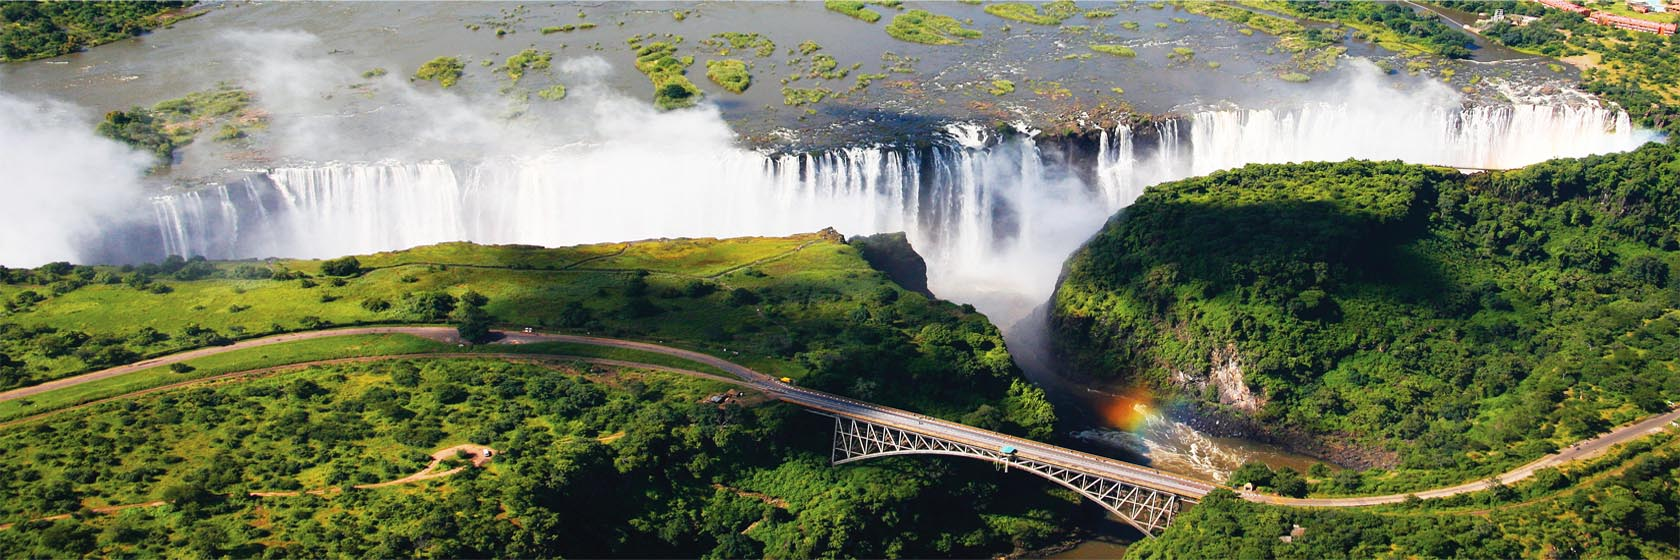 South Africa & Victoria Falls, 9 Days with A&K